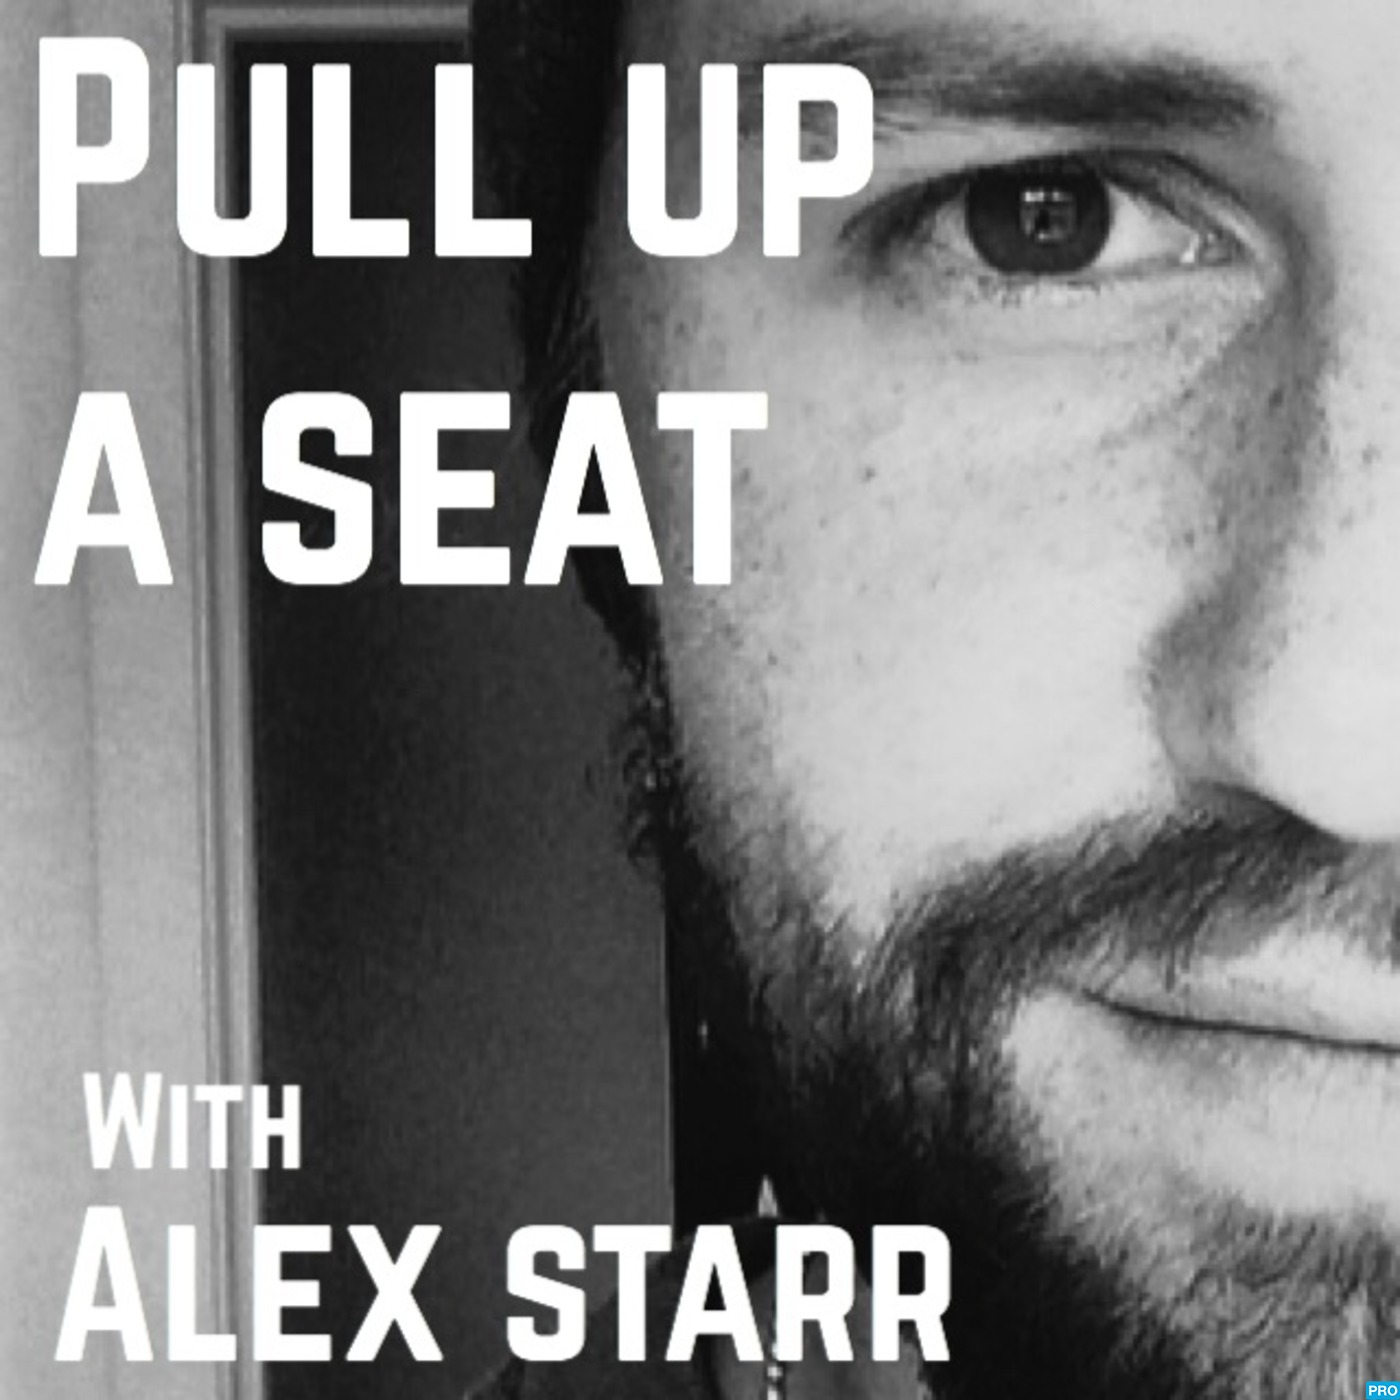 Pull Up a Seat with Alex Starr